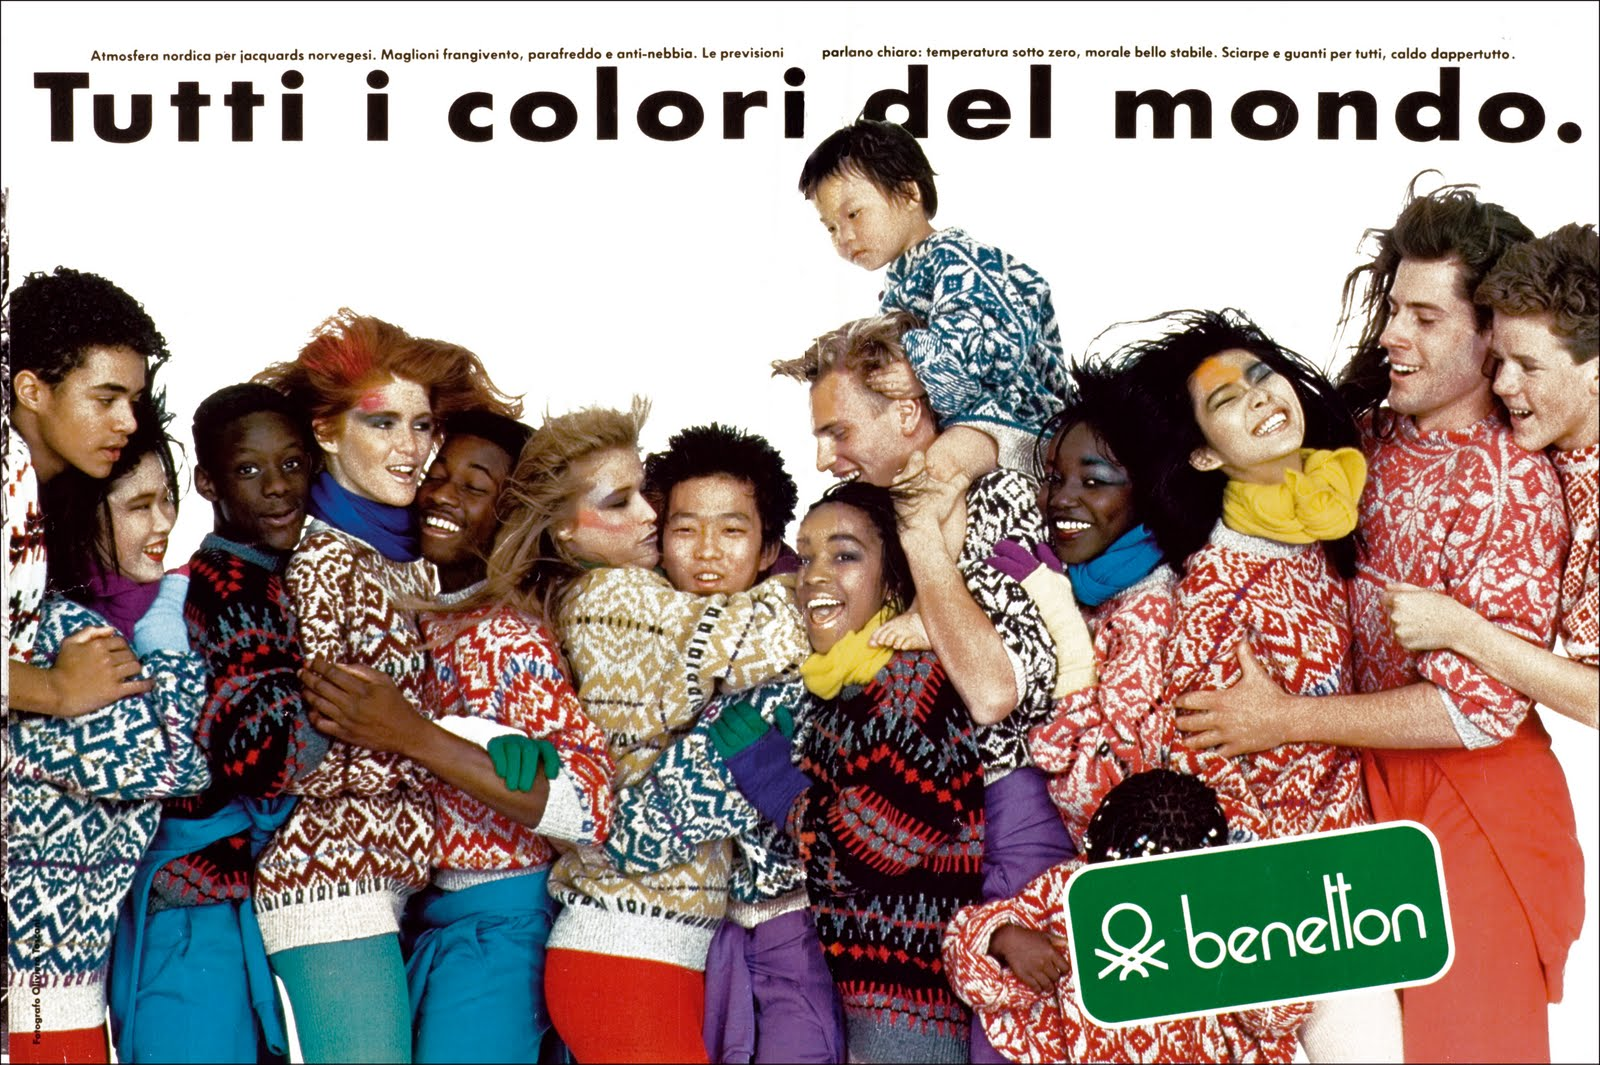 United colors of benetton ads